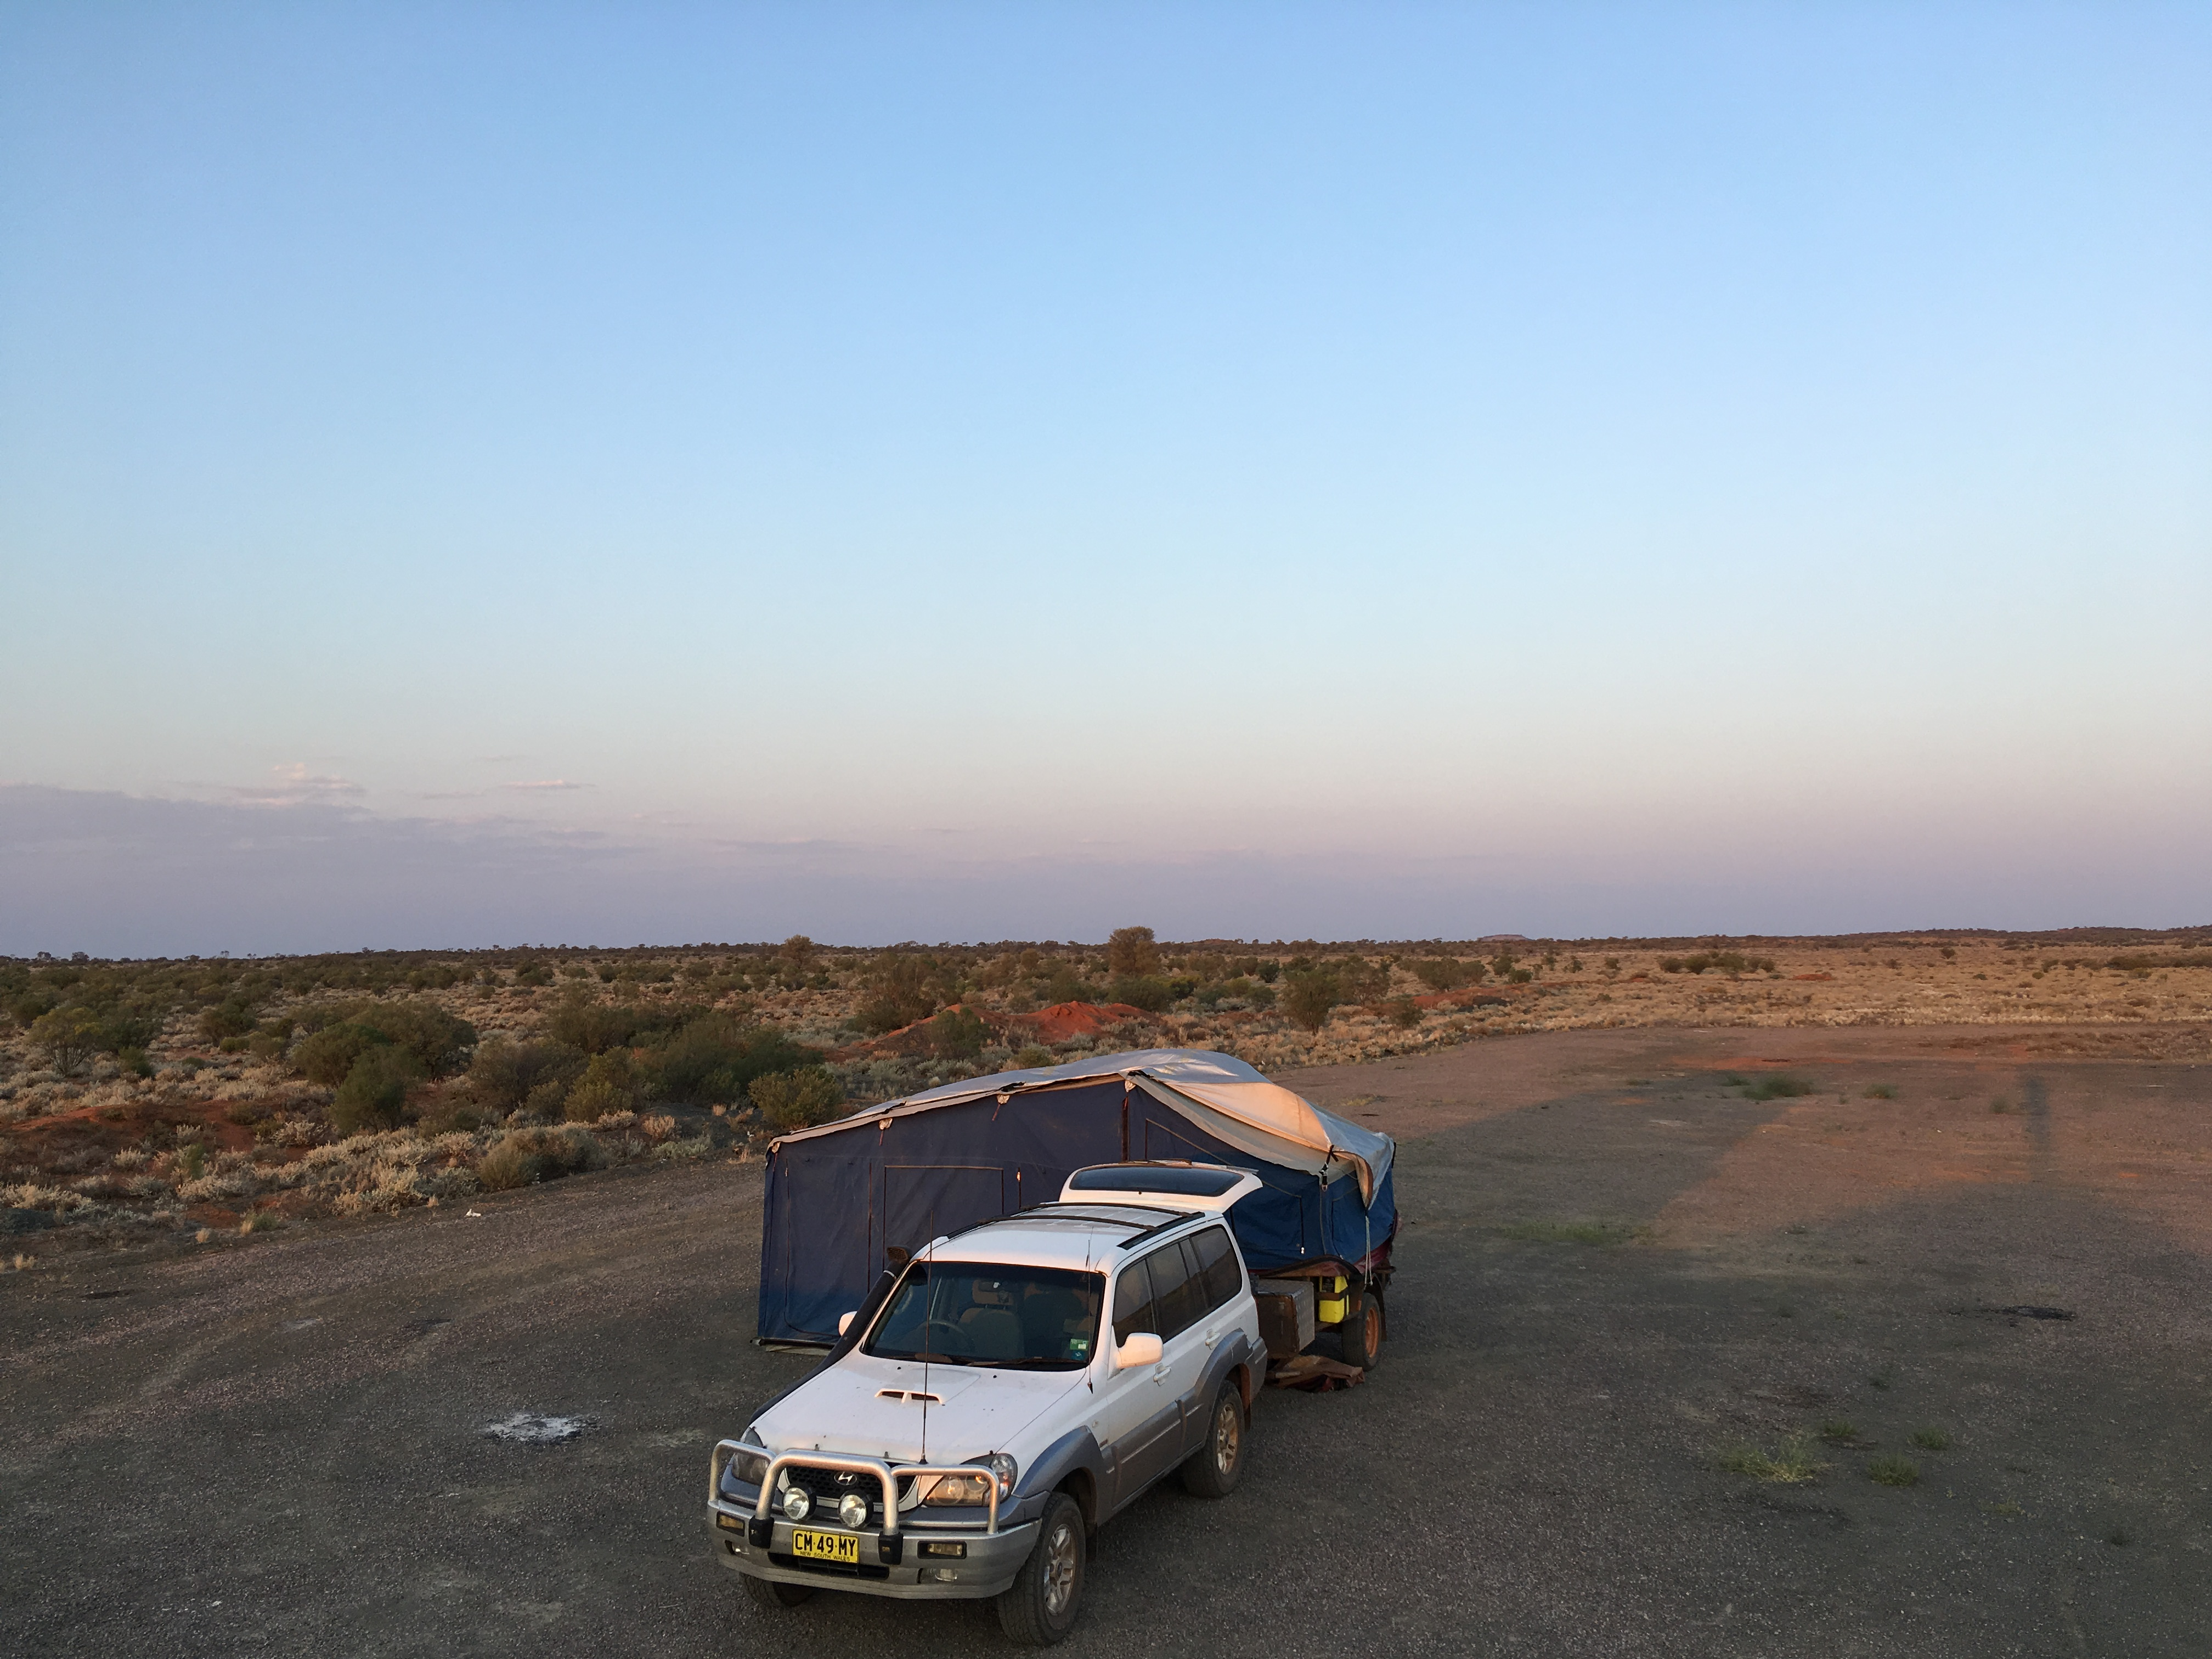 Ben & Michelle - Road Trip Around Australia - The Week of Bigs... incl Big Car Trouble - This week was big, in many senses of the word, big drives, big scenery, big rocks, big carparks, big car troubles...